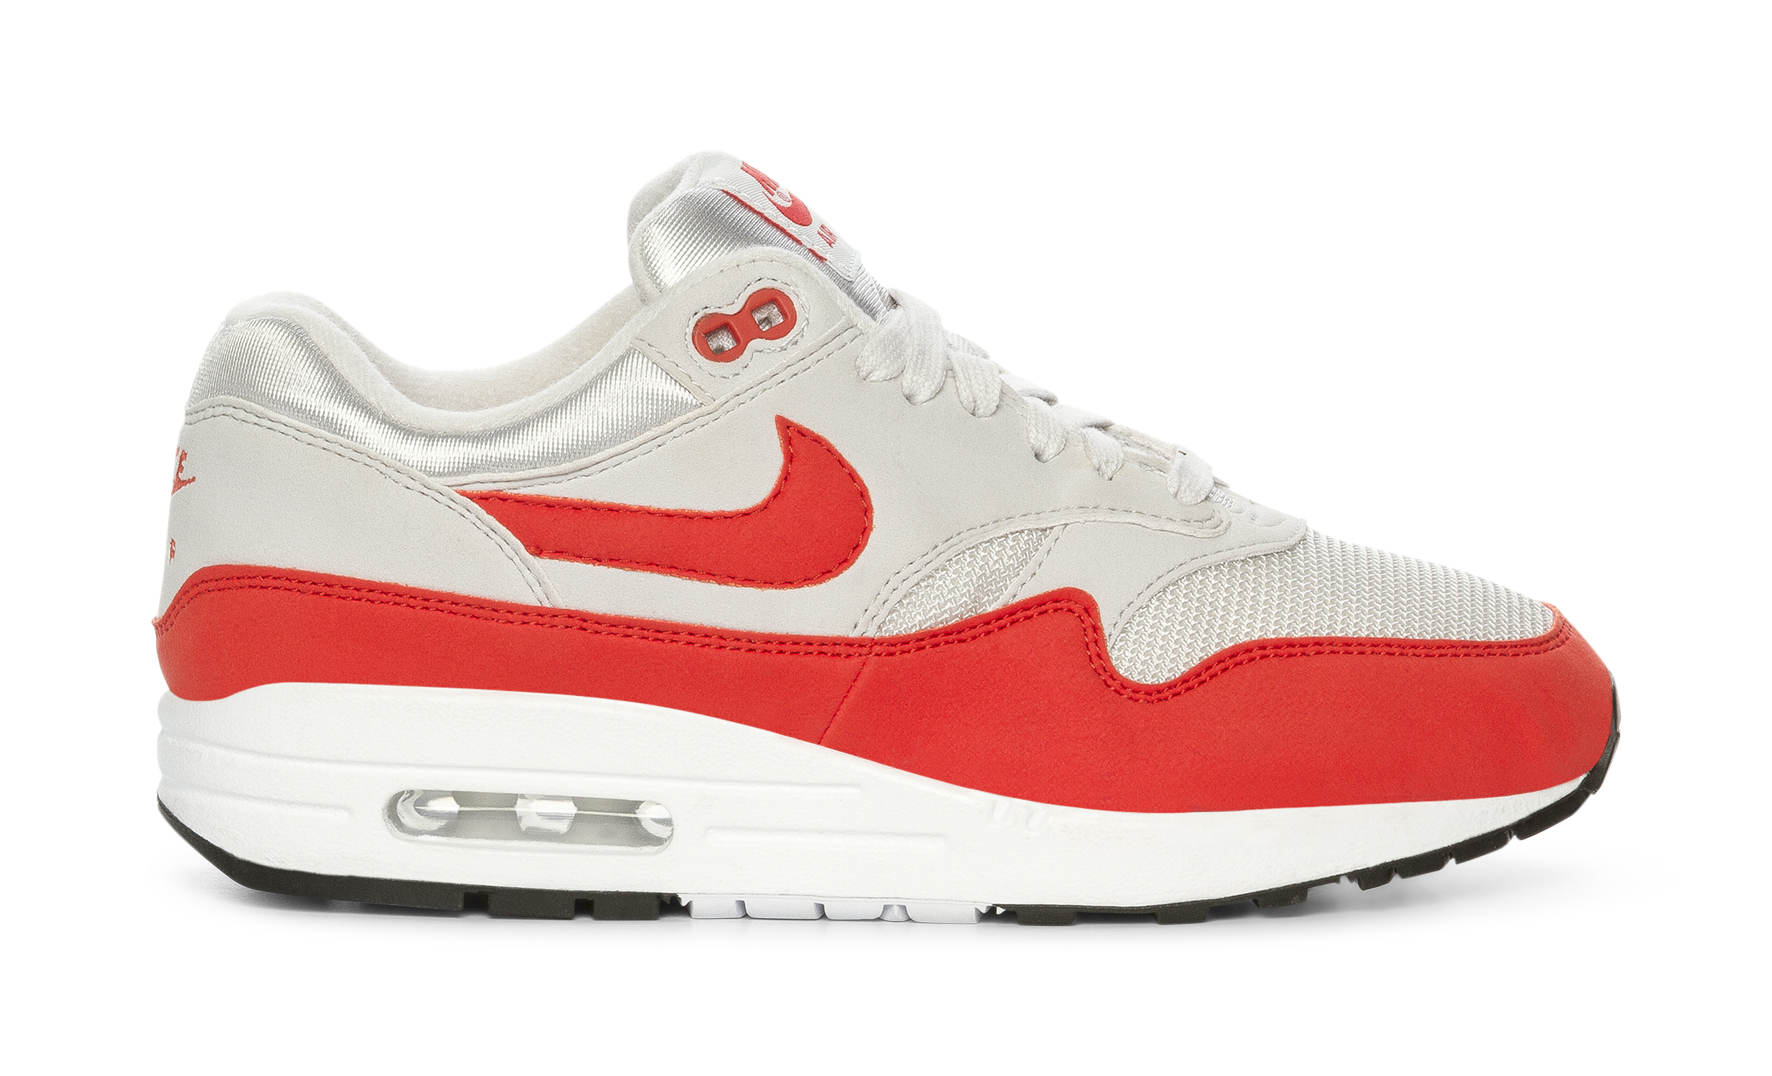 super popular e4cd4 a34ce Nike Air Max 1 Vit - 316701